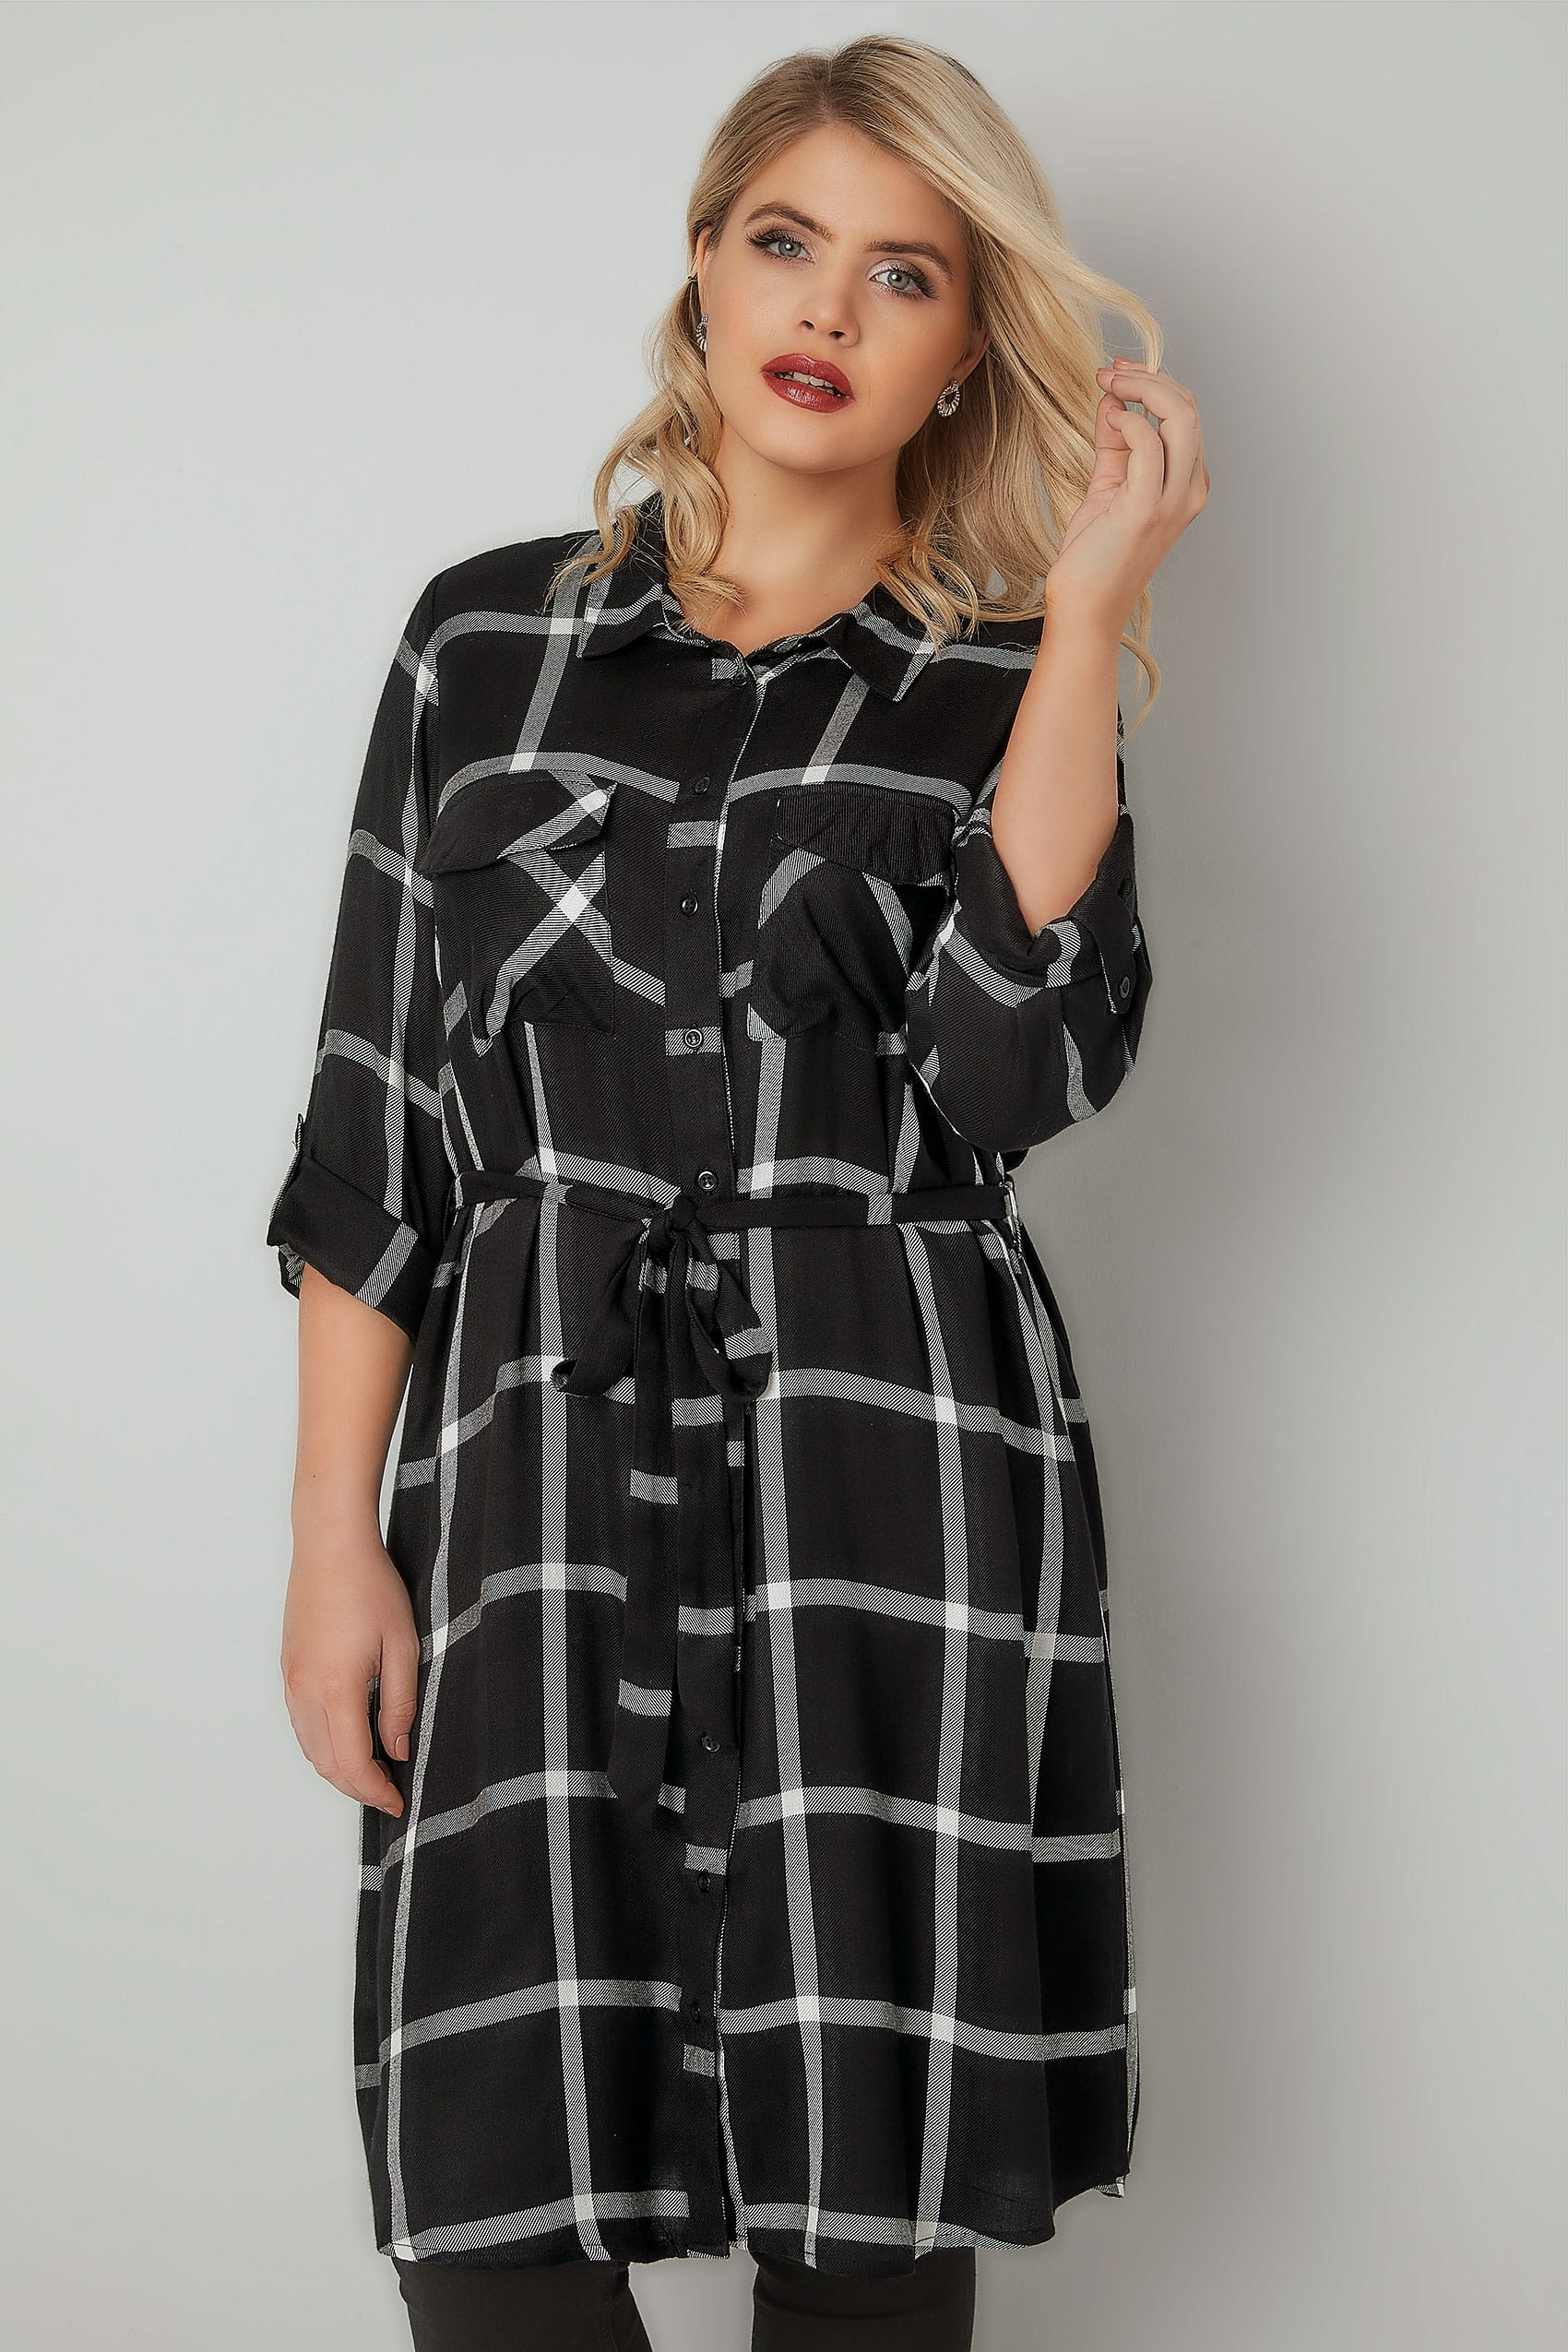 7f0ee2e0291bc1 Black & White Checked Longline Shirt With Tie Waist, Plus size 16 to 36